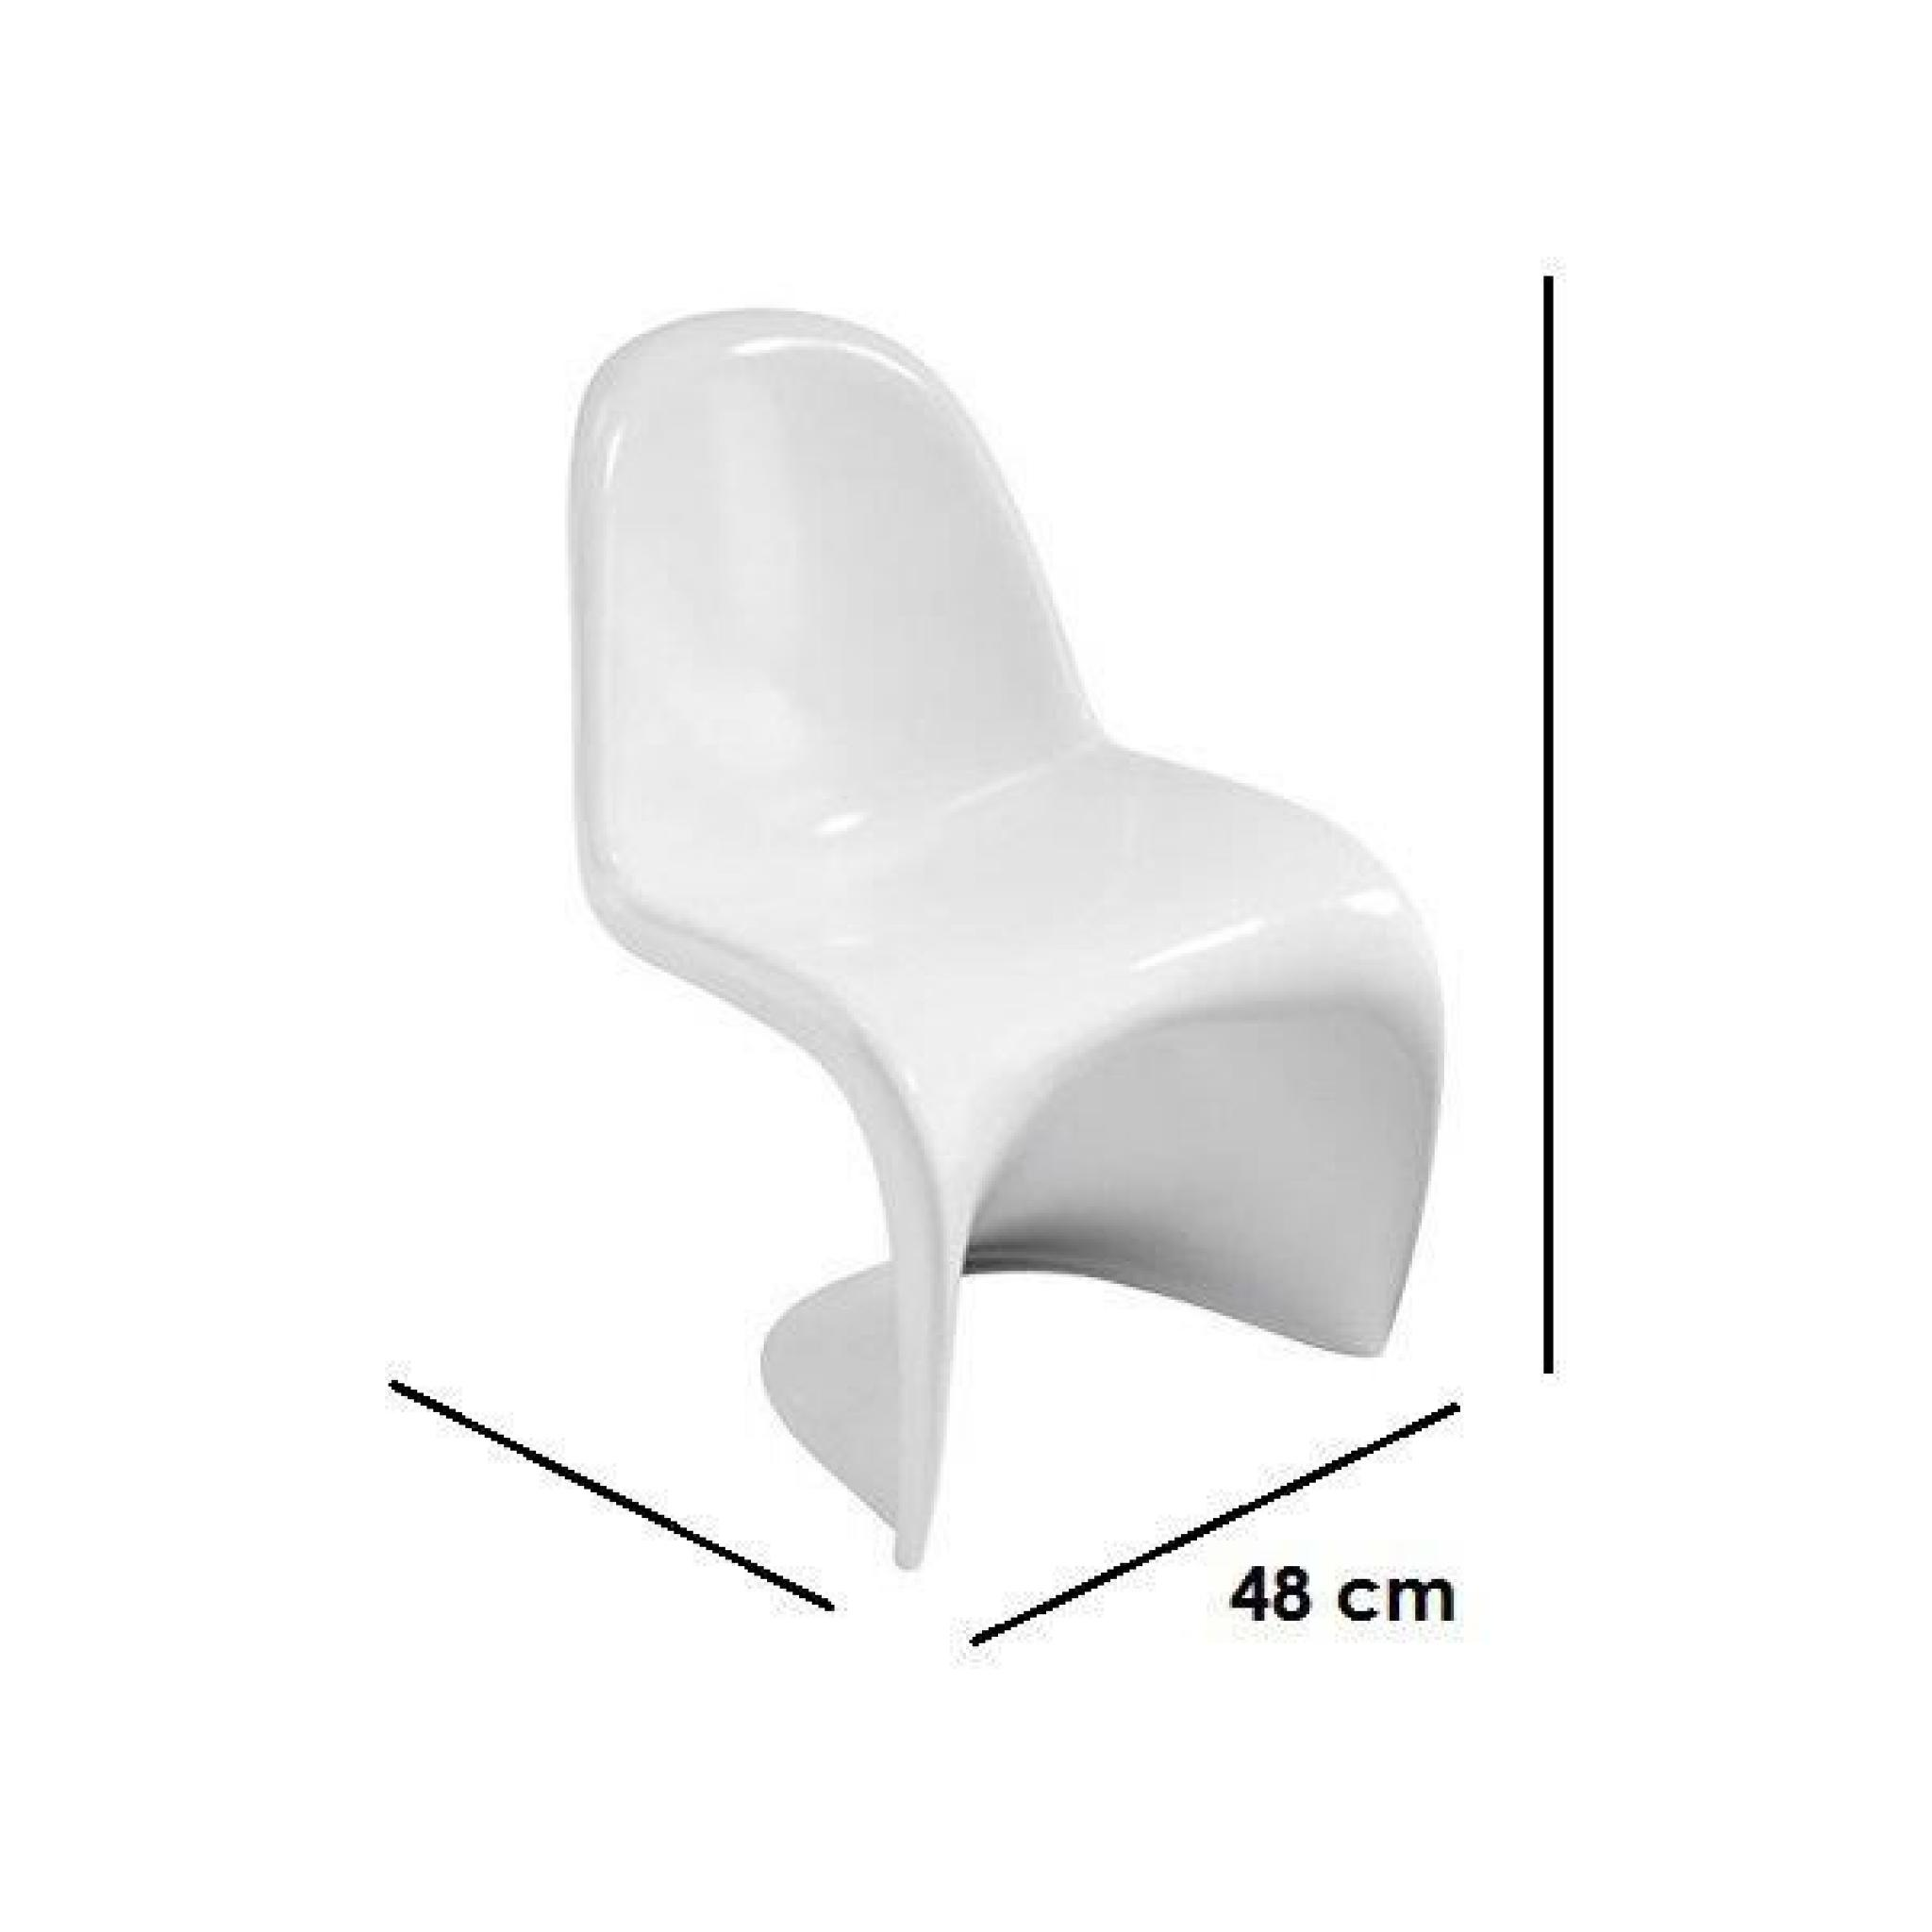 Chaises Blanches Pas Cheres Chaise Design Pas Cher Blanche Best Table With Chaise